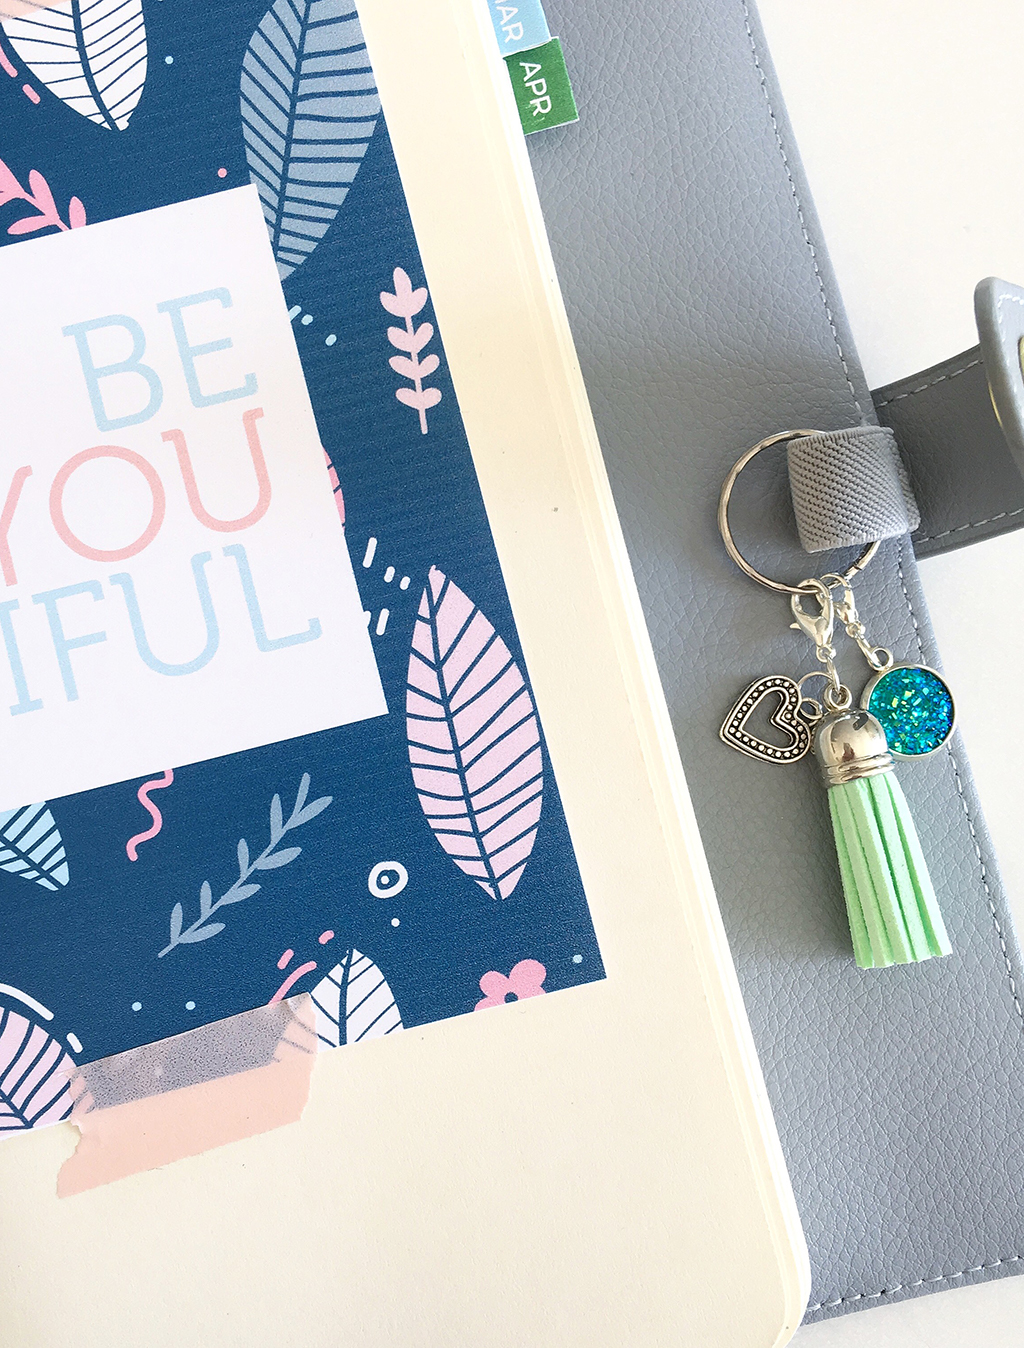 Add a planner charm keyring to your pen loop